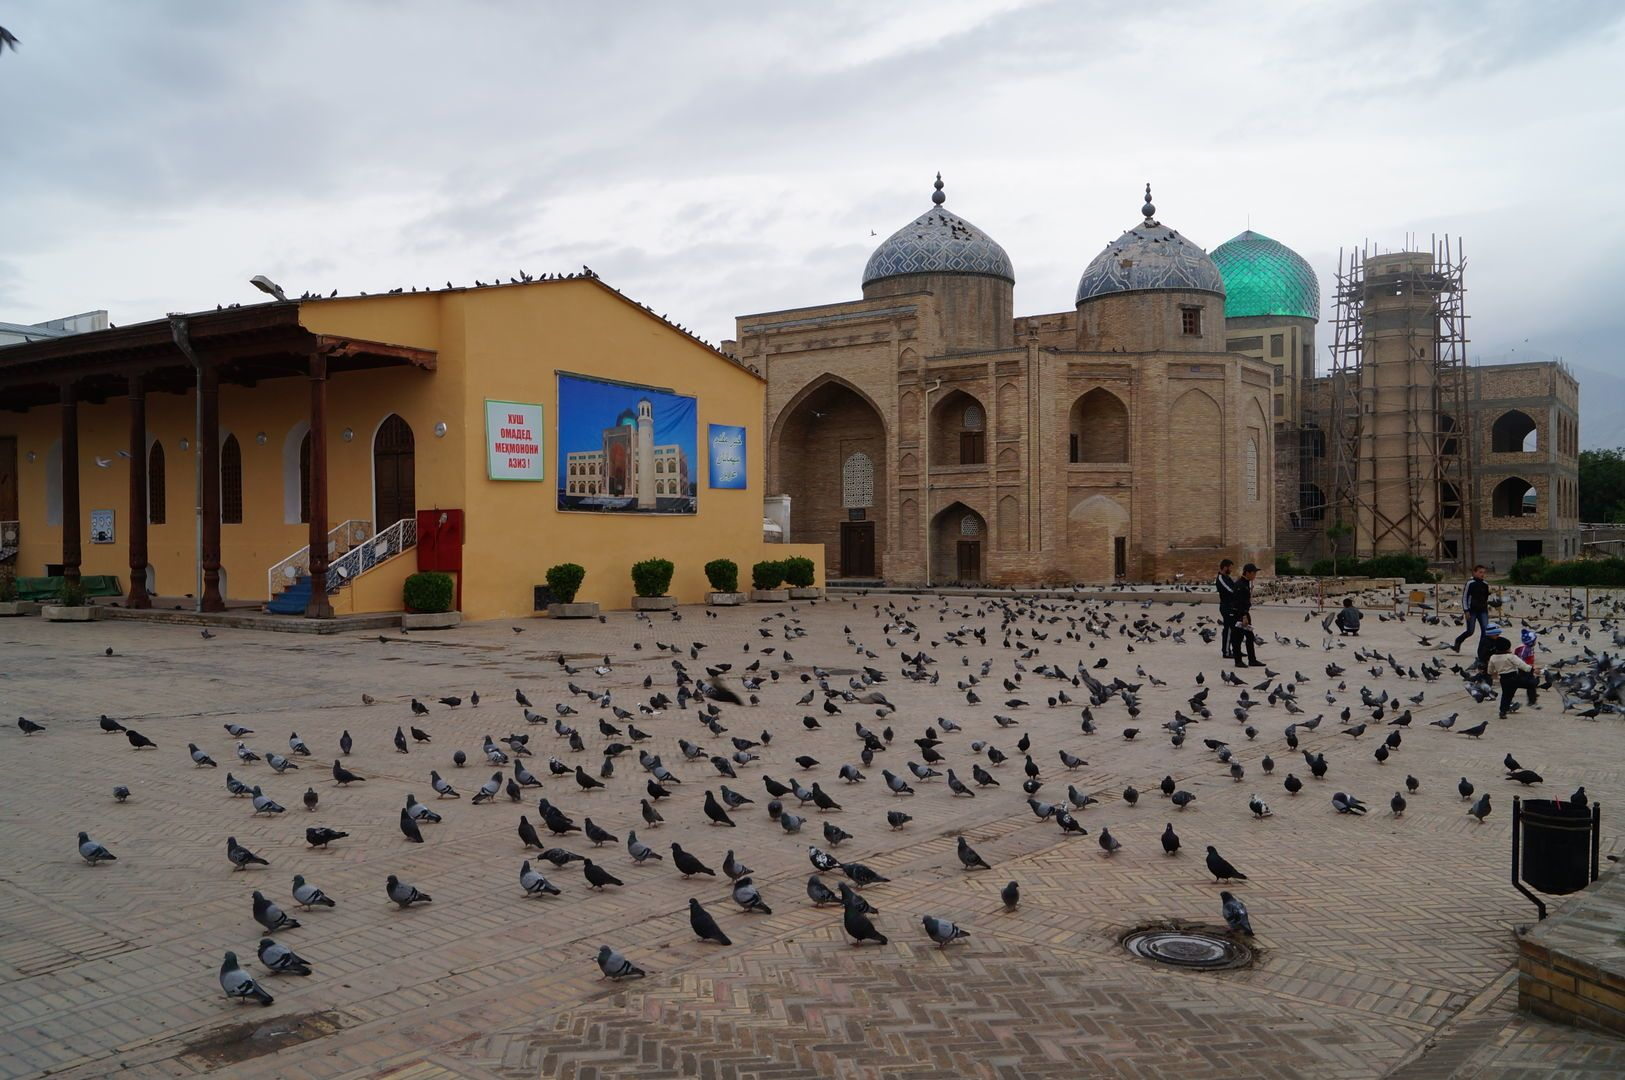 Khujand square full of pigeons and ancient buildings-central-asia-culture